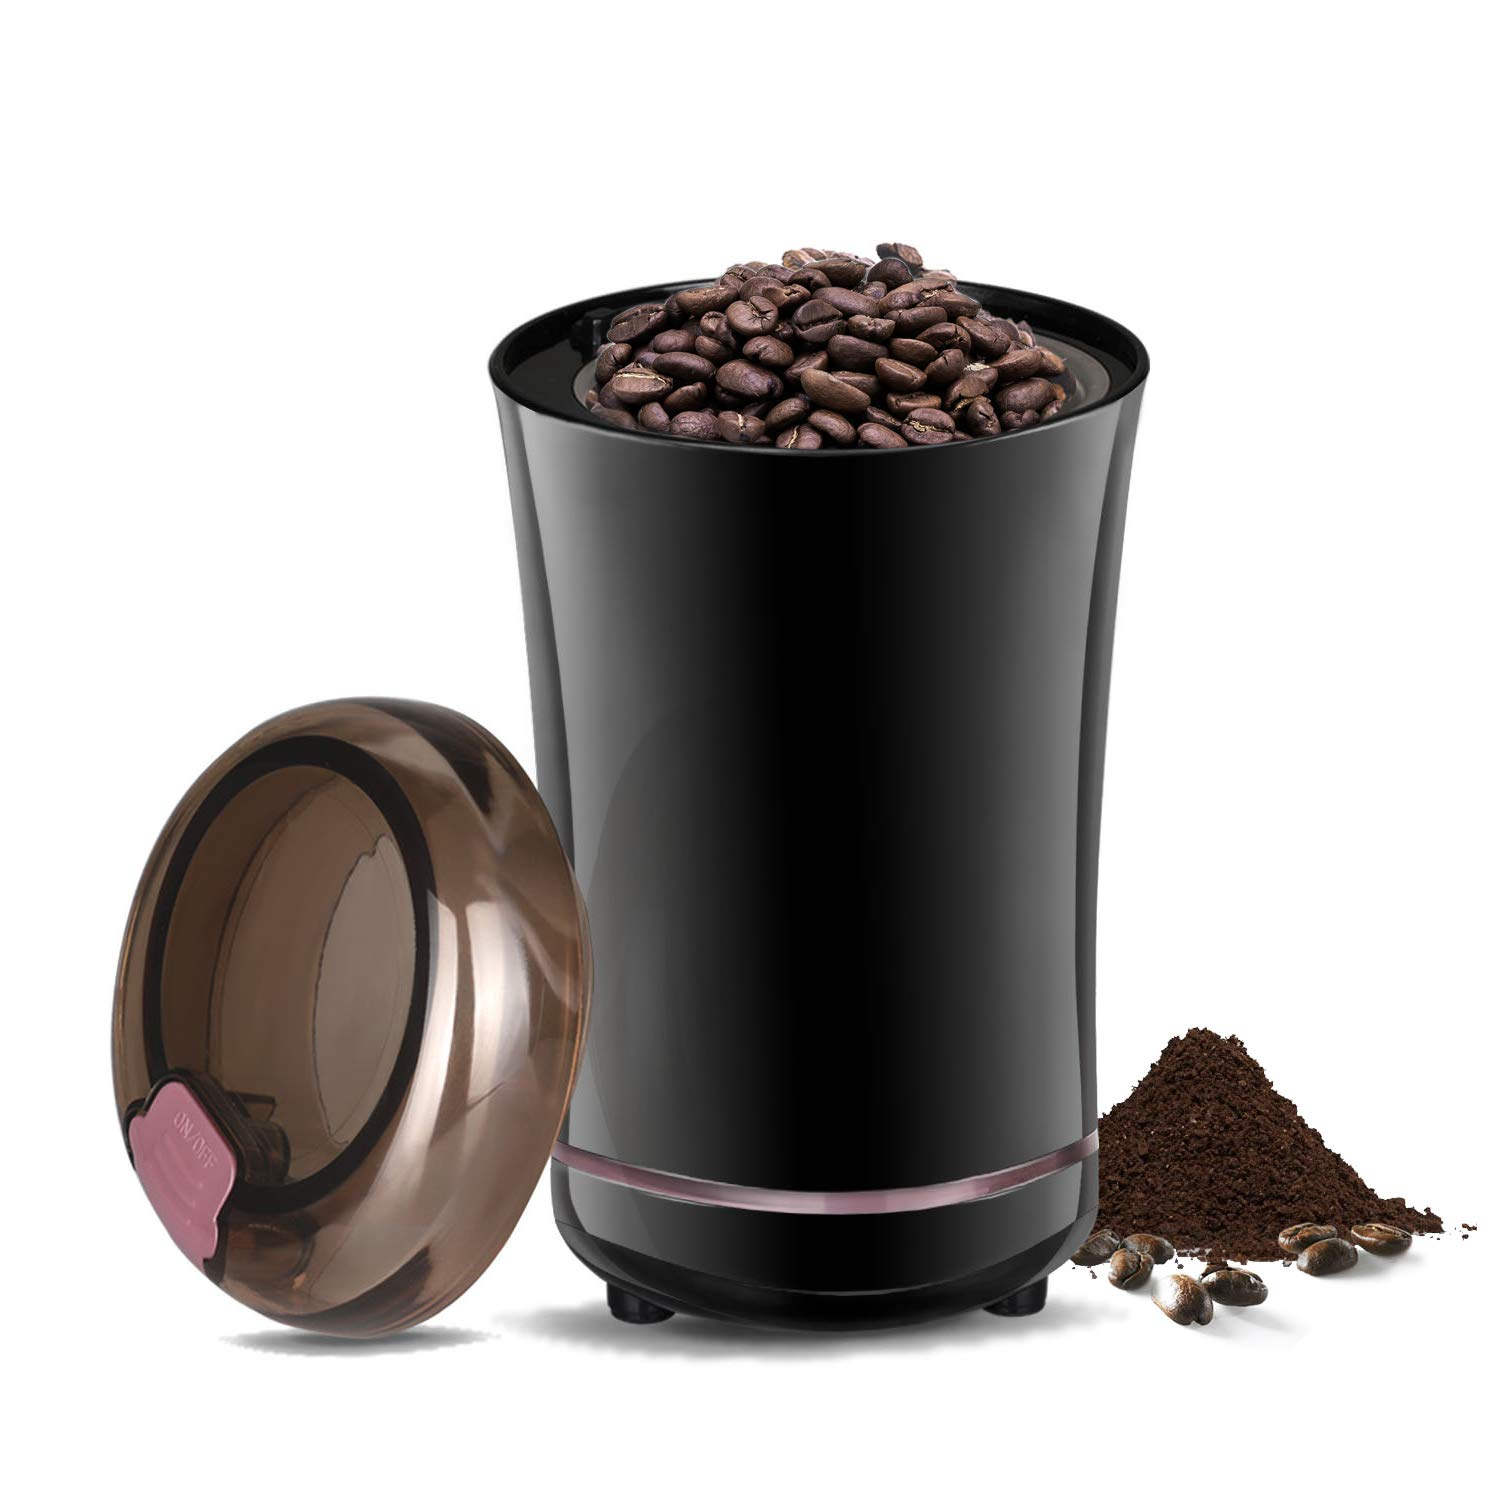 Coffee Grinder, Travelnote Electric Coffee Bean Grinder with Stainless Steel Blades for Coffee Beans Spice Nuts Grain, Make Up to 12Cups